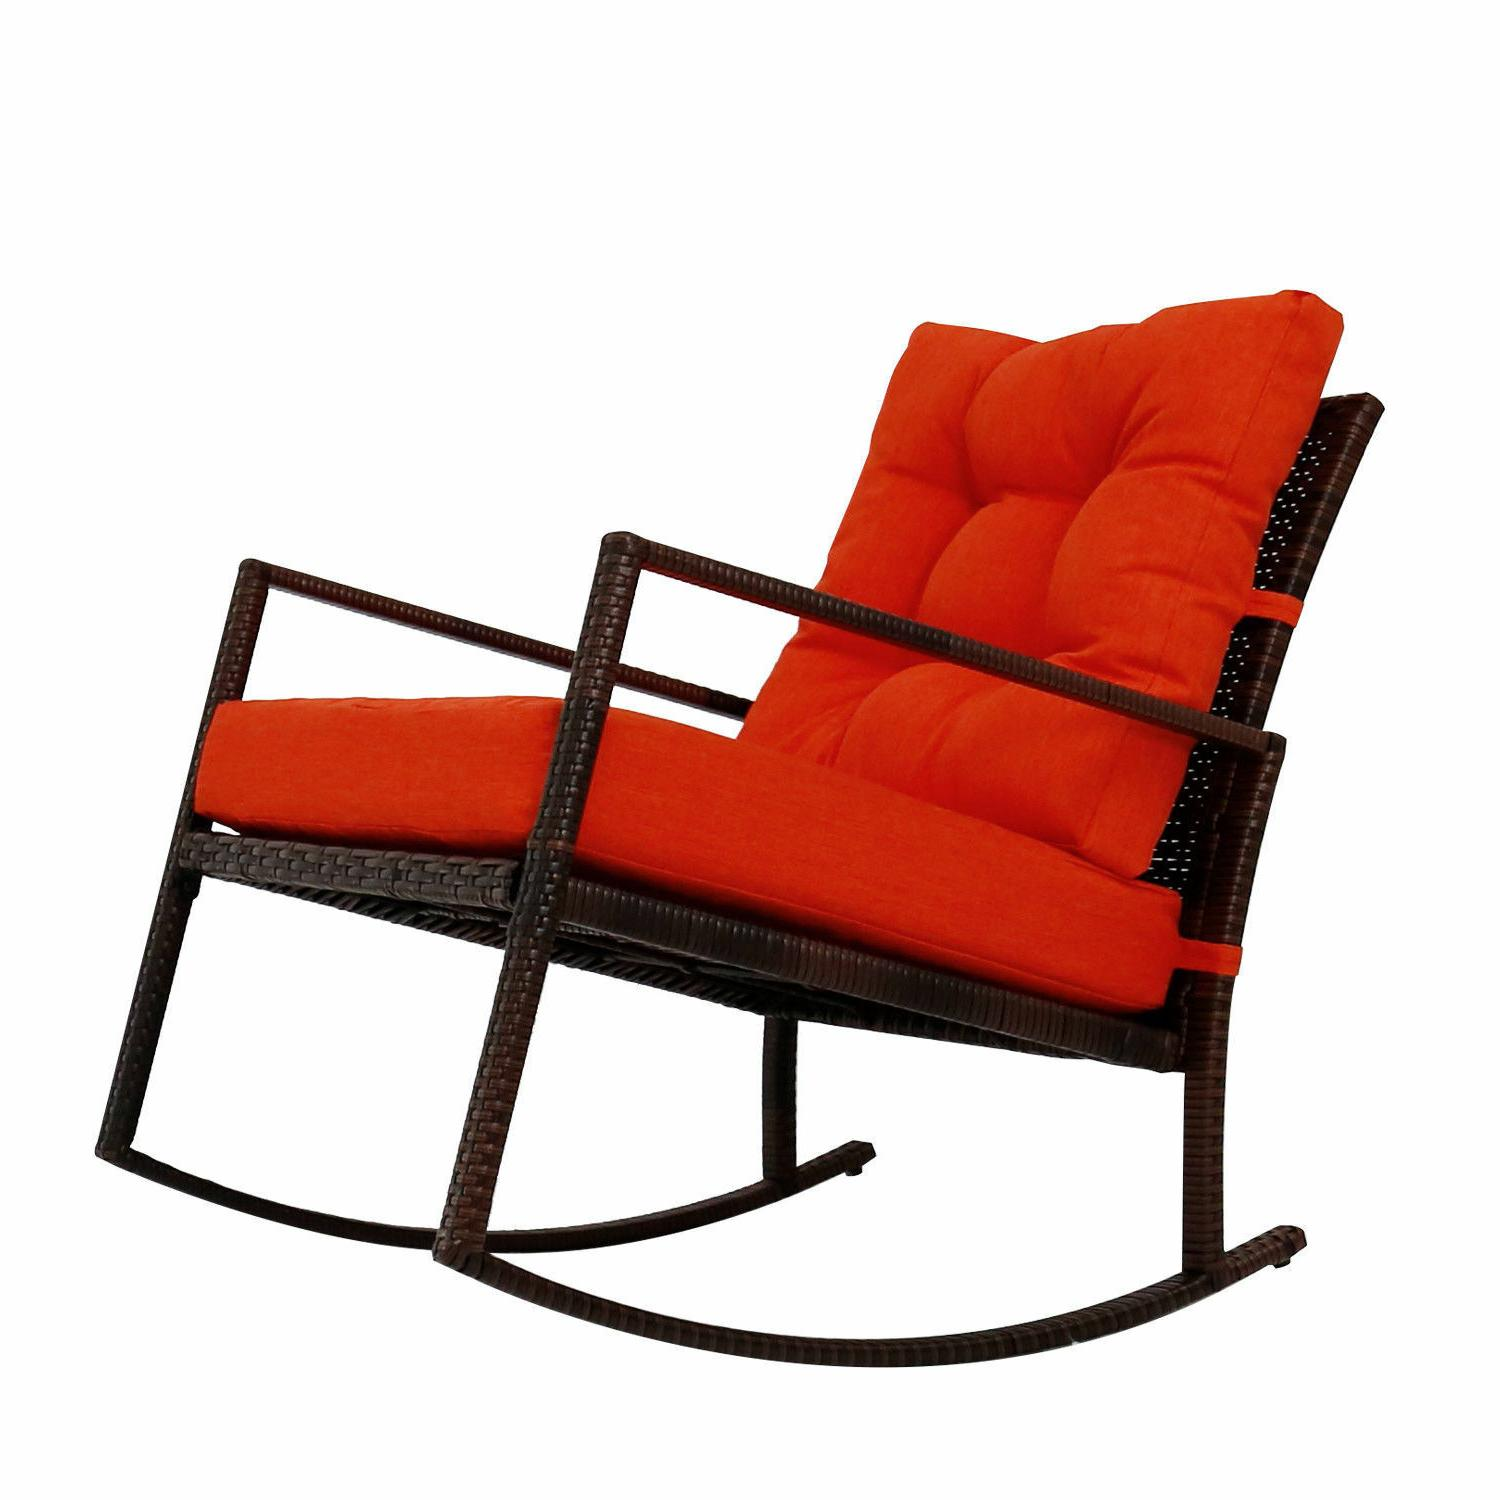 Outdoor Chair Porch Seat